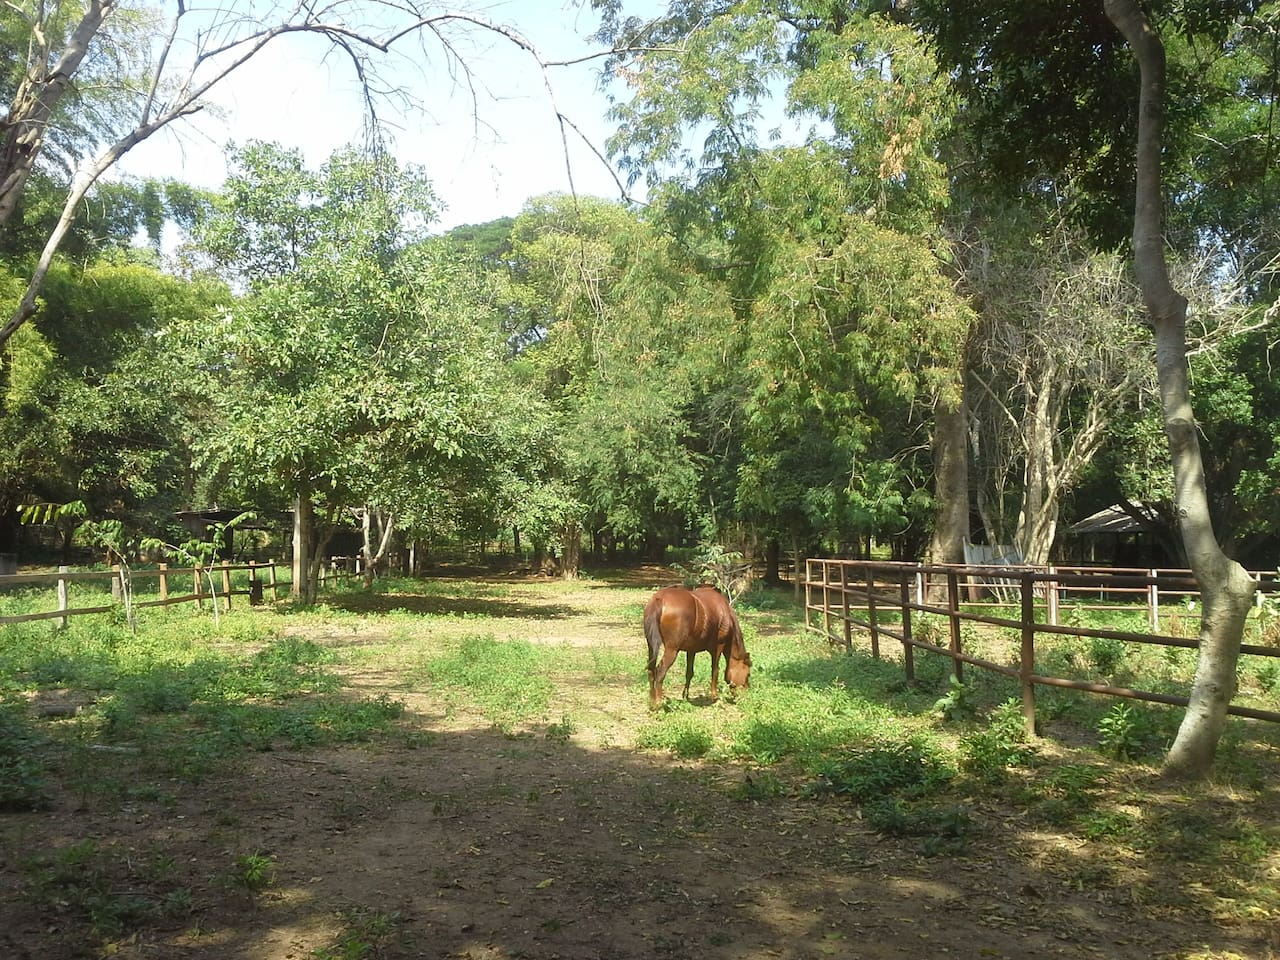 Thorn, one of our 9 horses, is grazing freely in our own little forest patch.